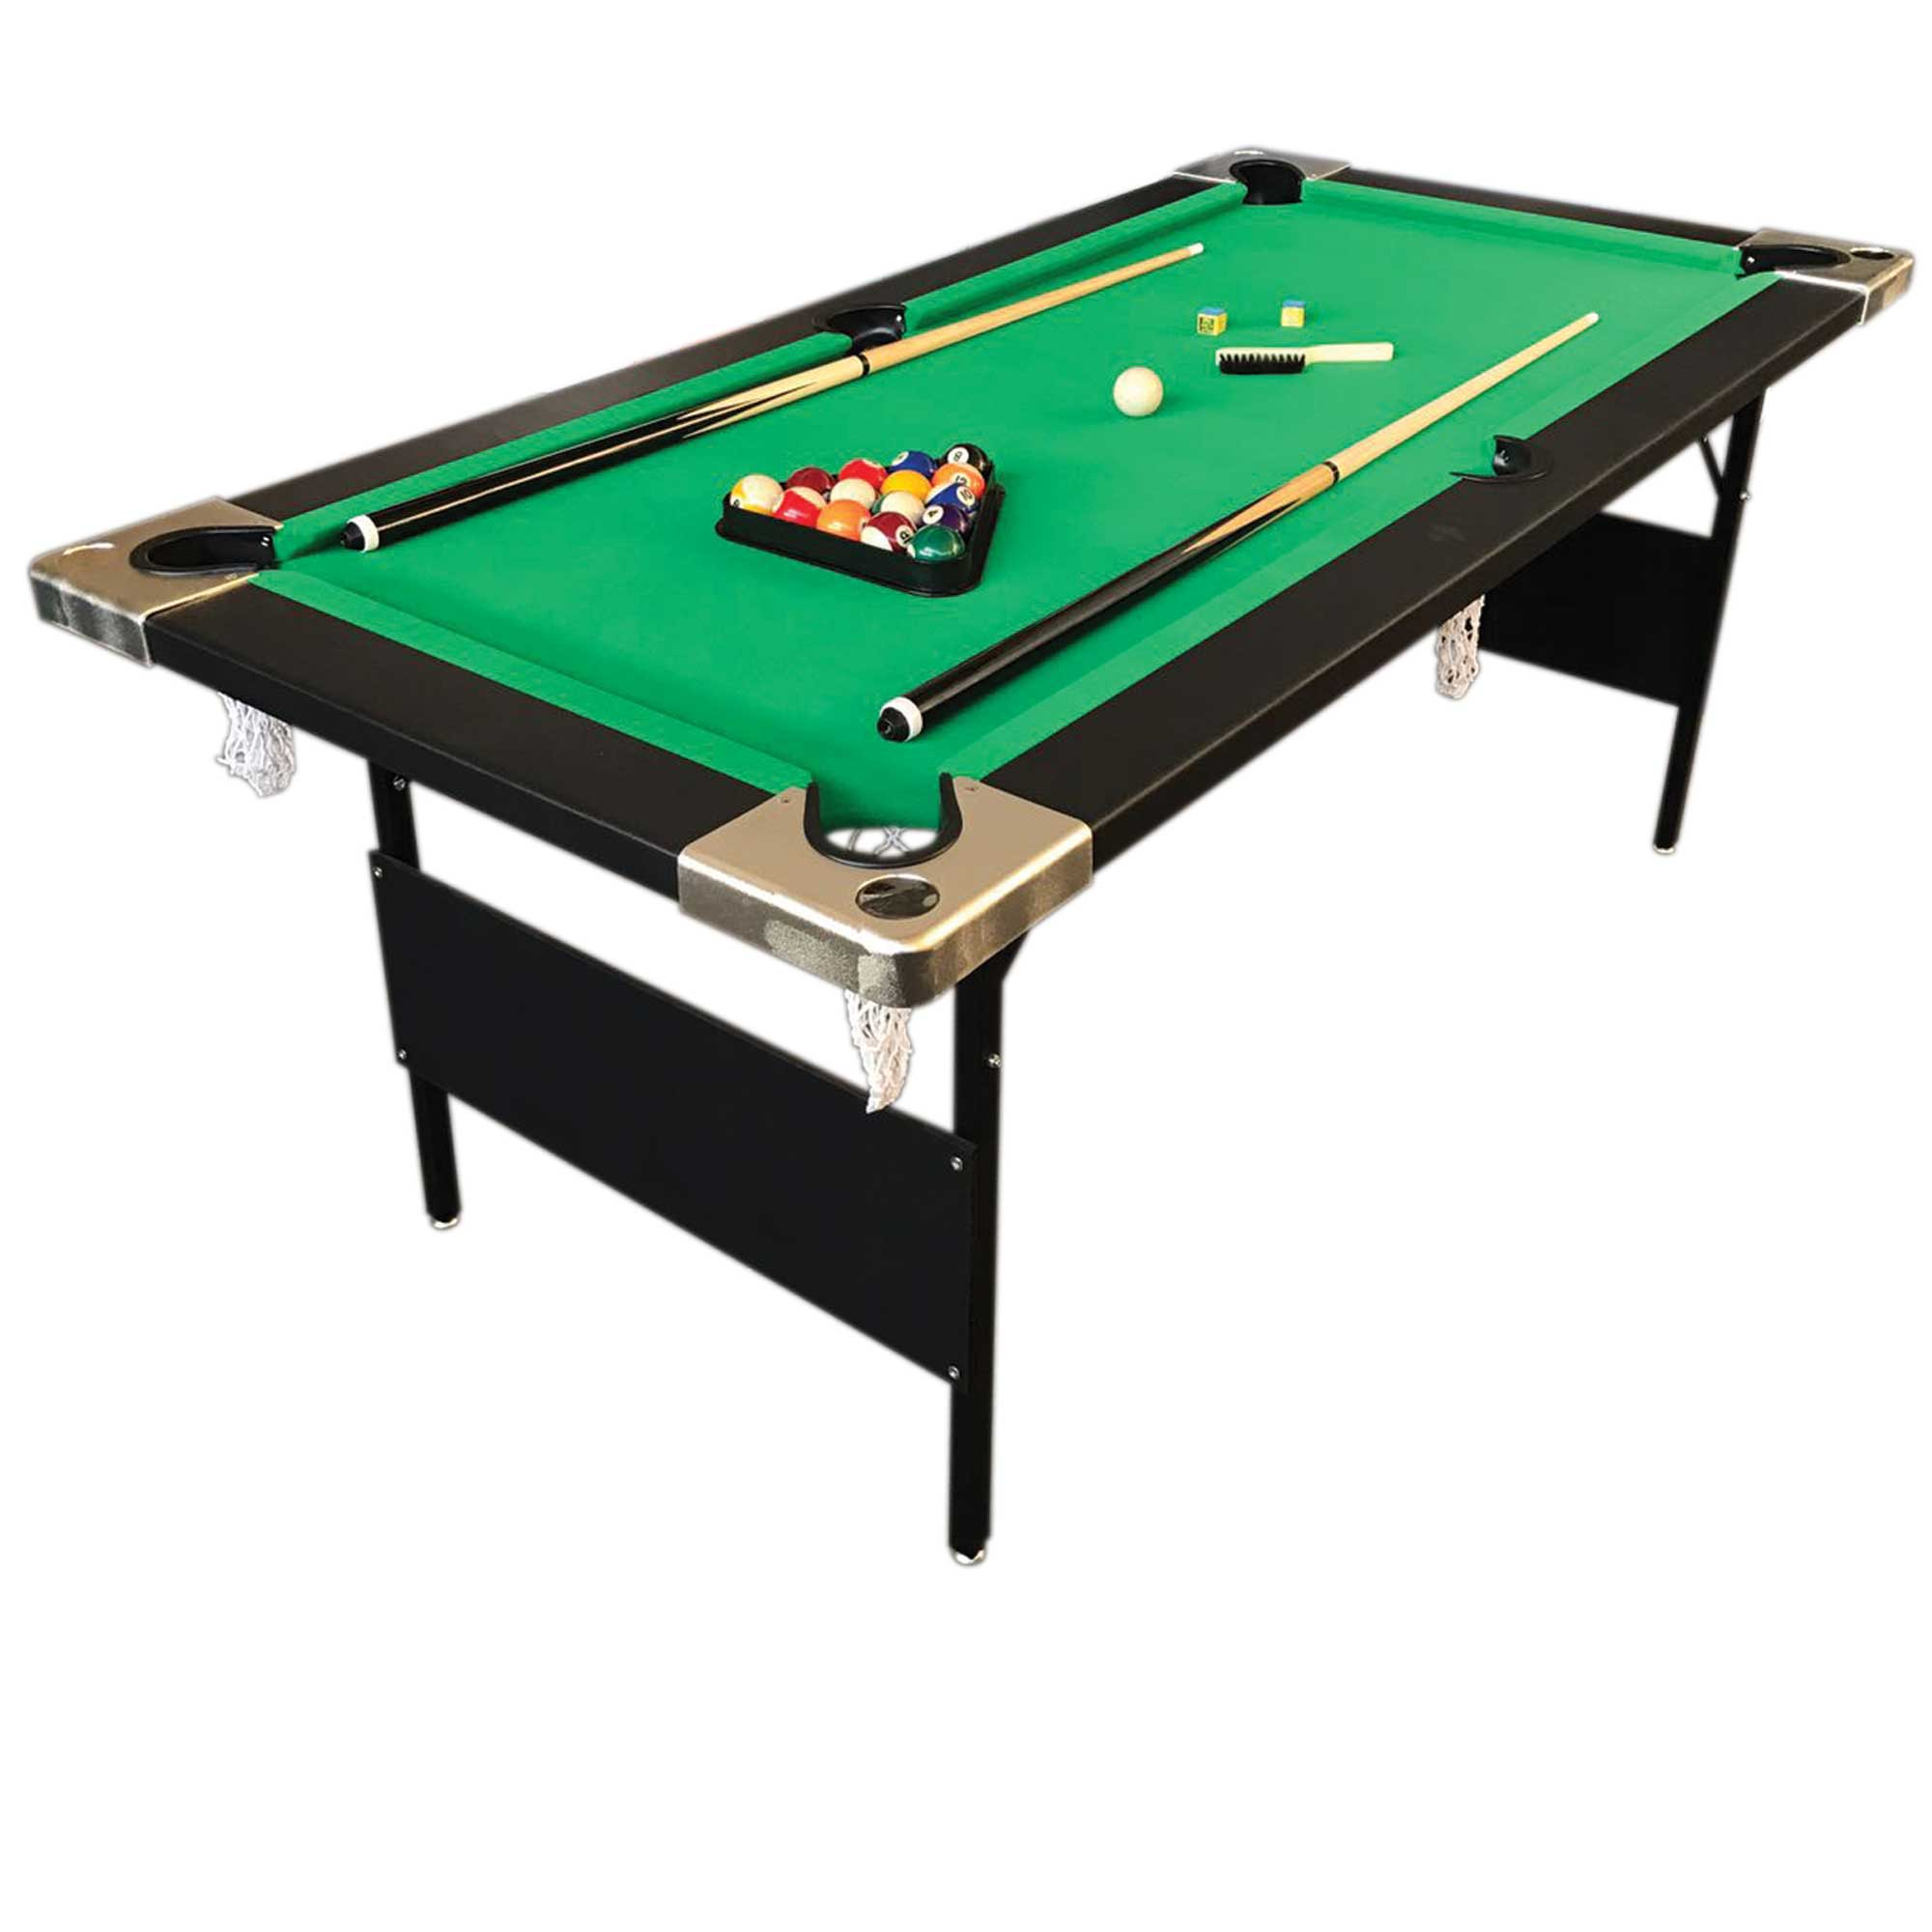 6 39 feet billiard pool table portable snooker accessories for 10 foot pool table